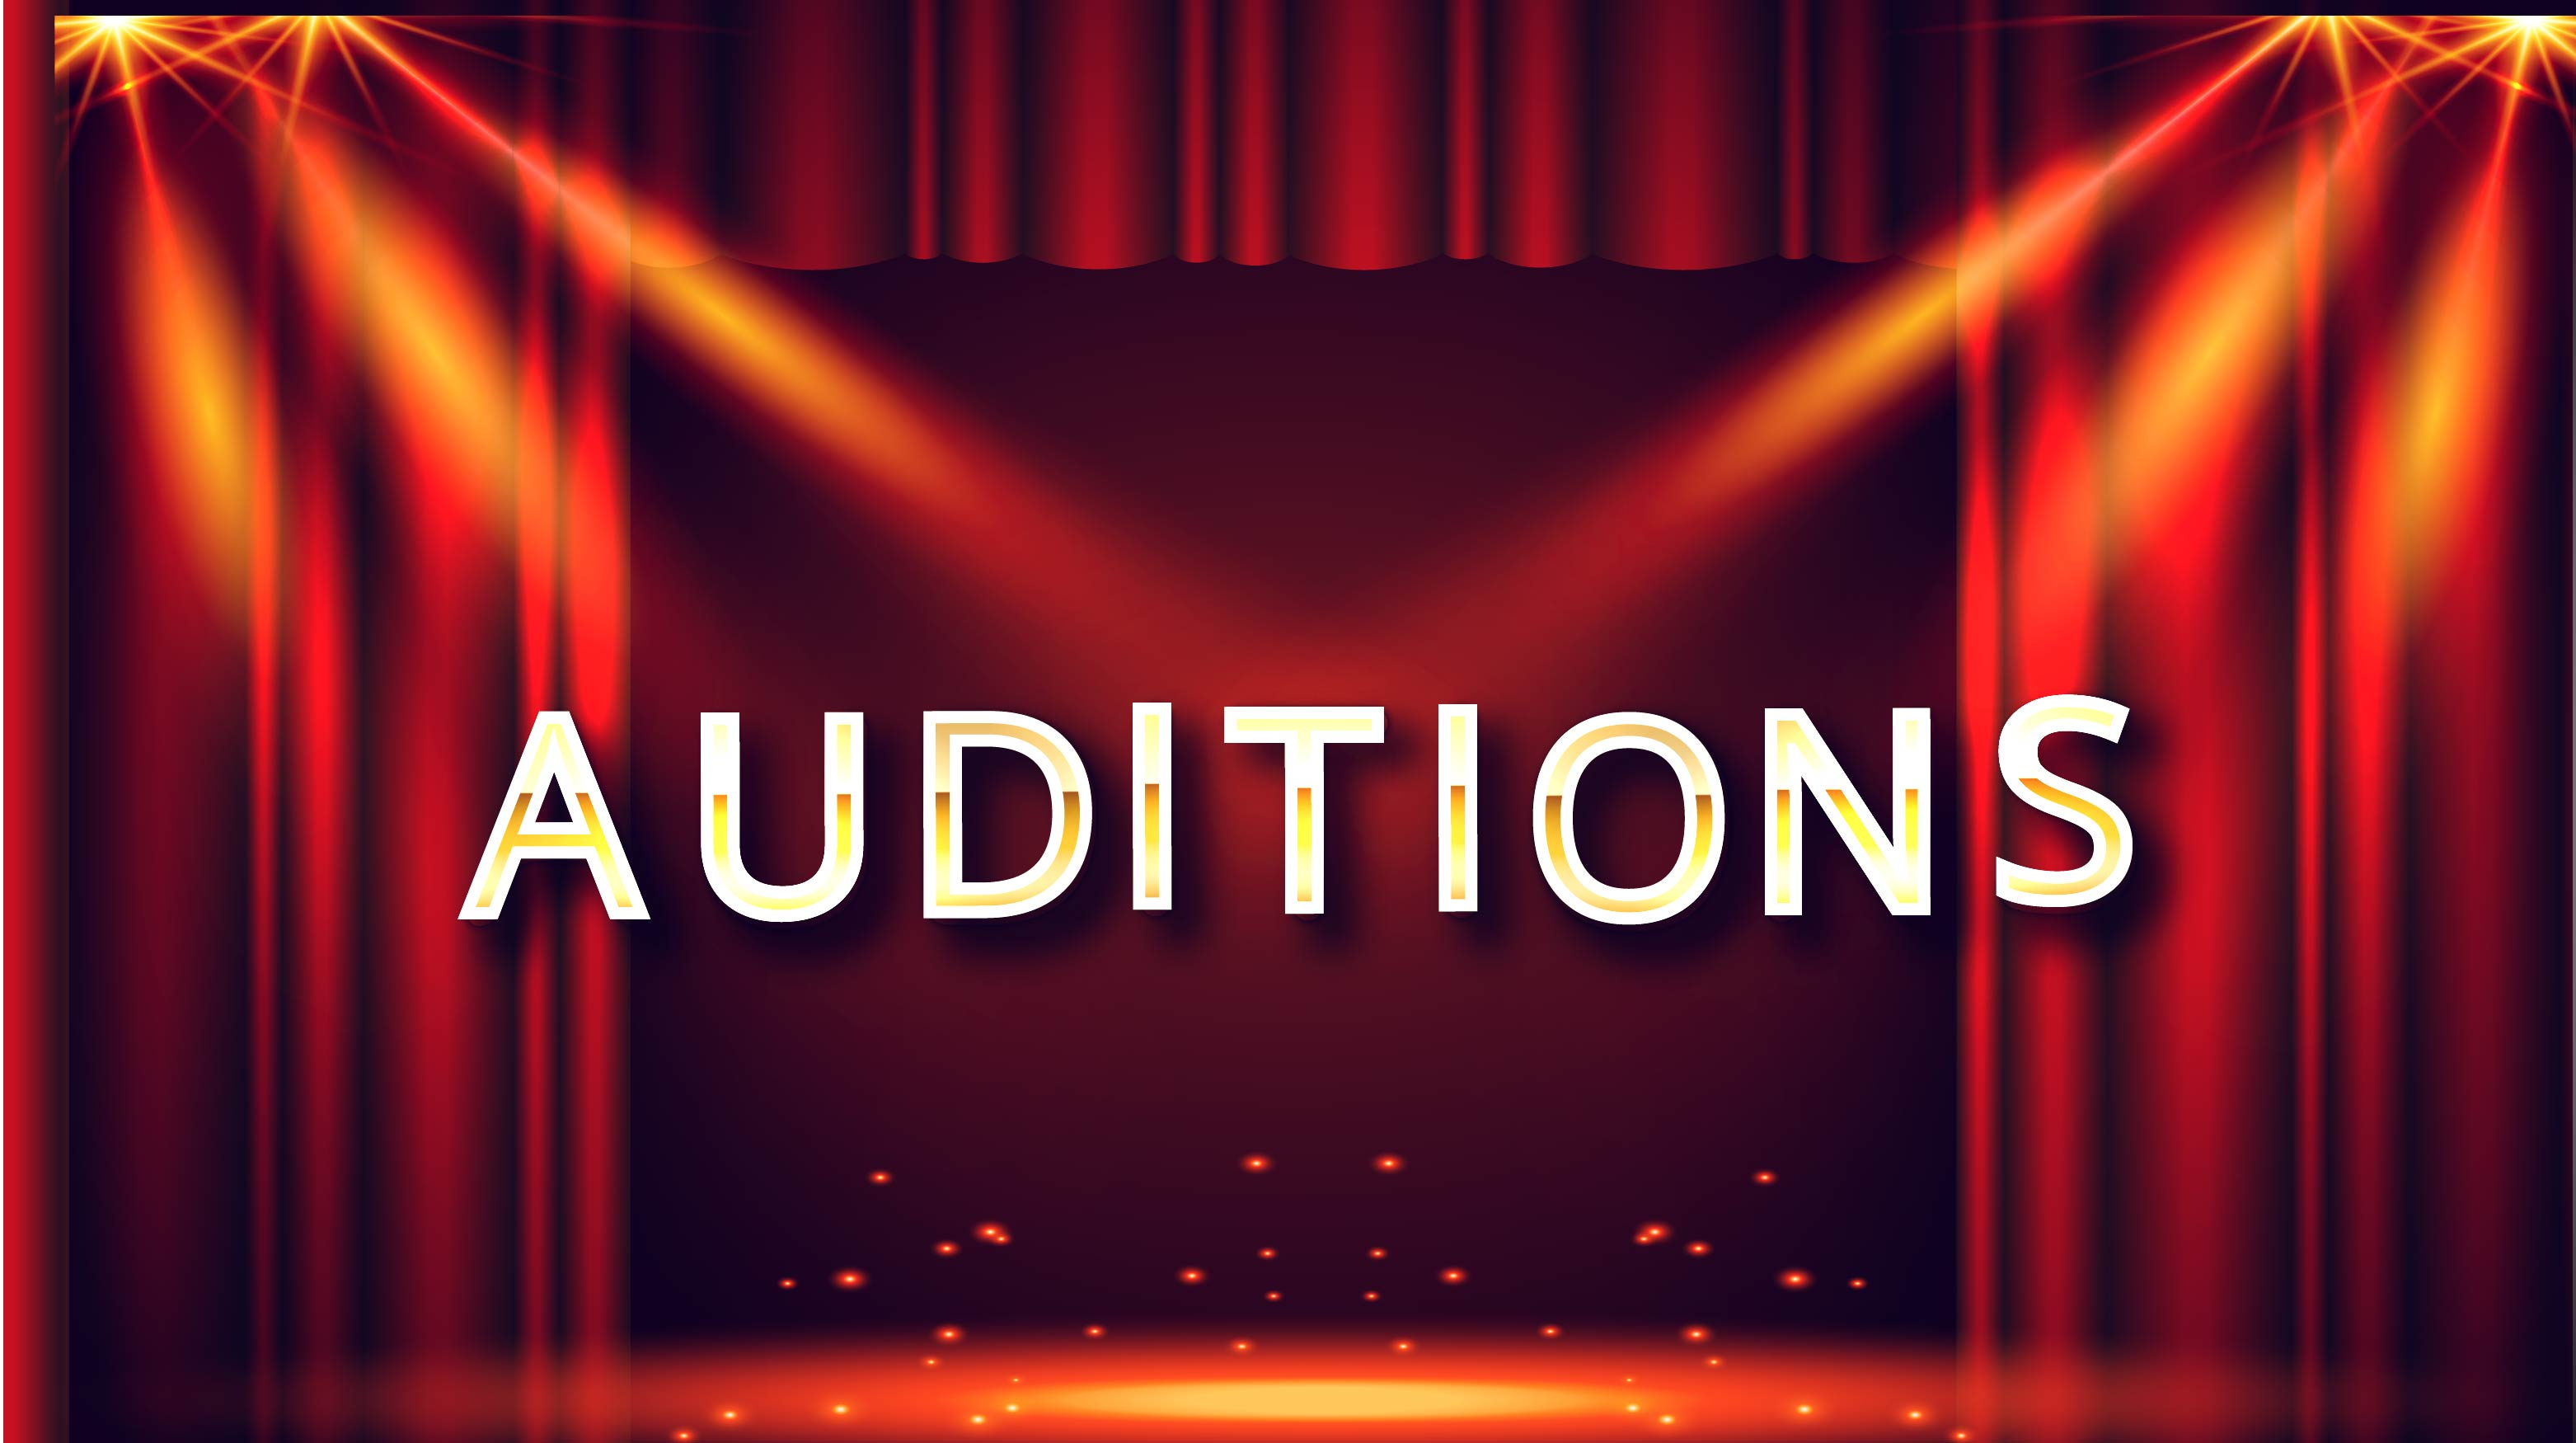 auditions_Web-01